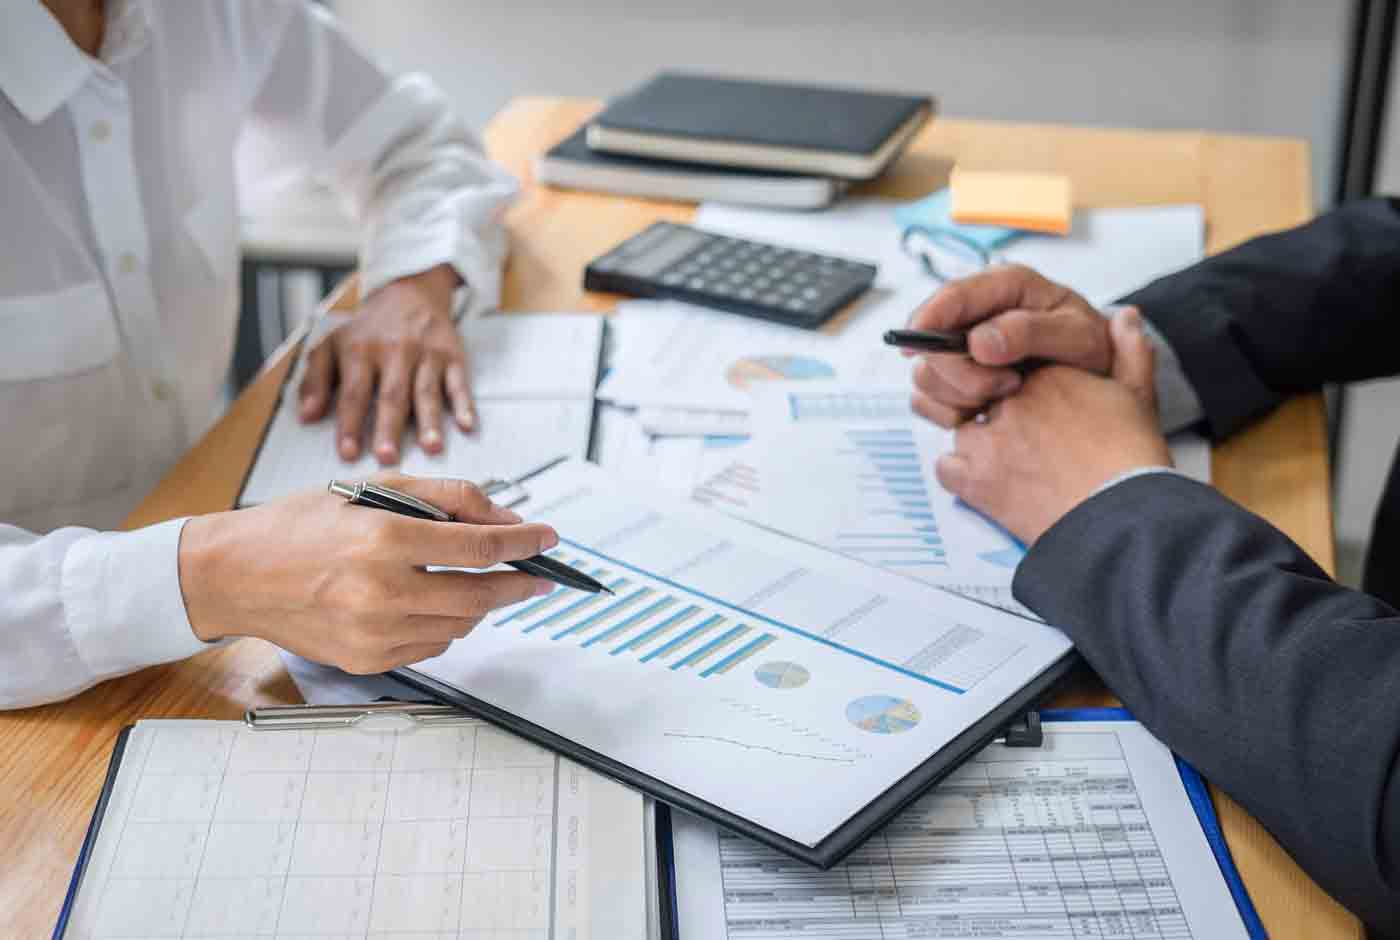 Secure Plus Financial providing Financing Consulting Services in Brownsville, TX